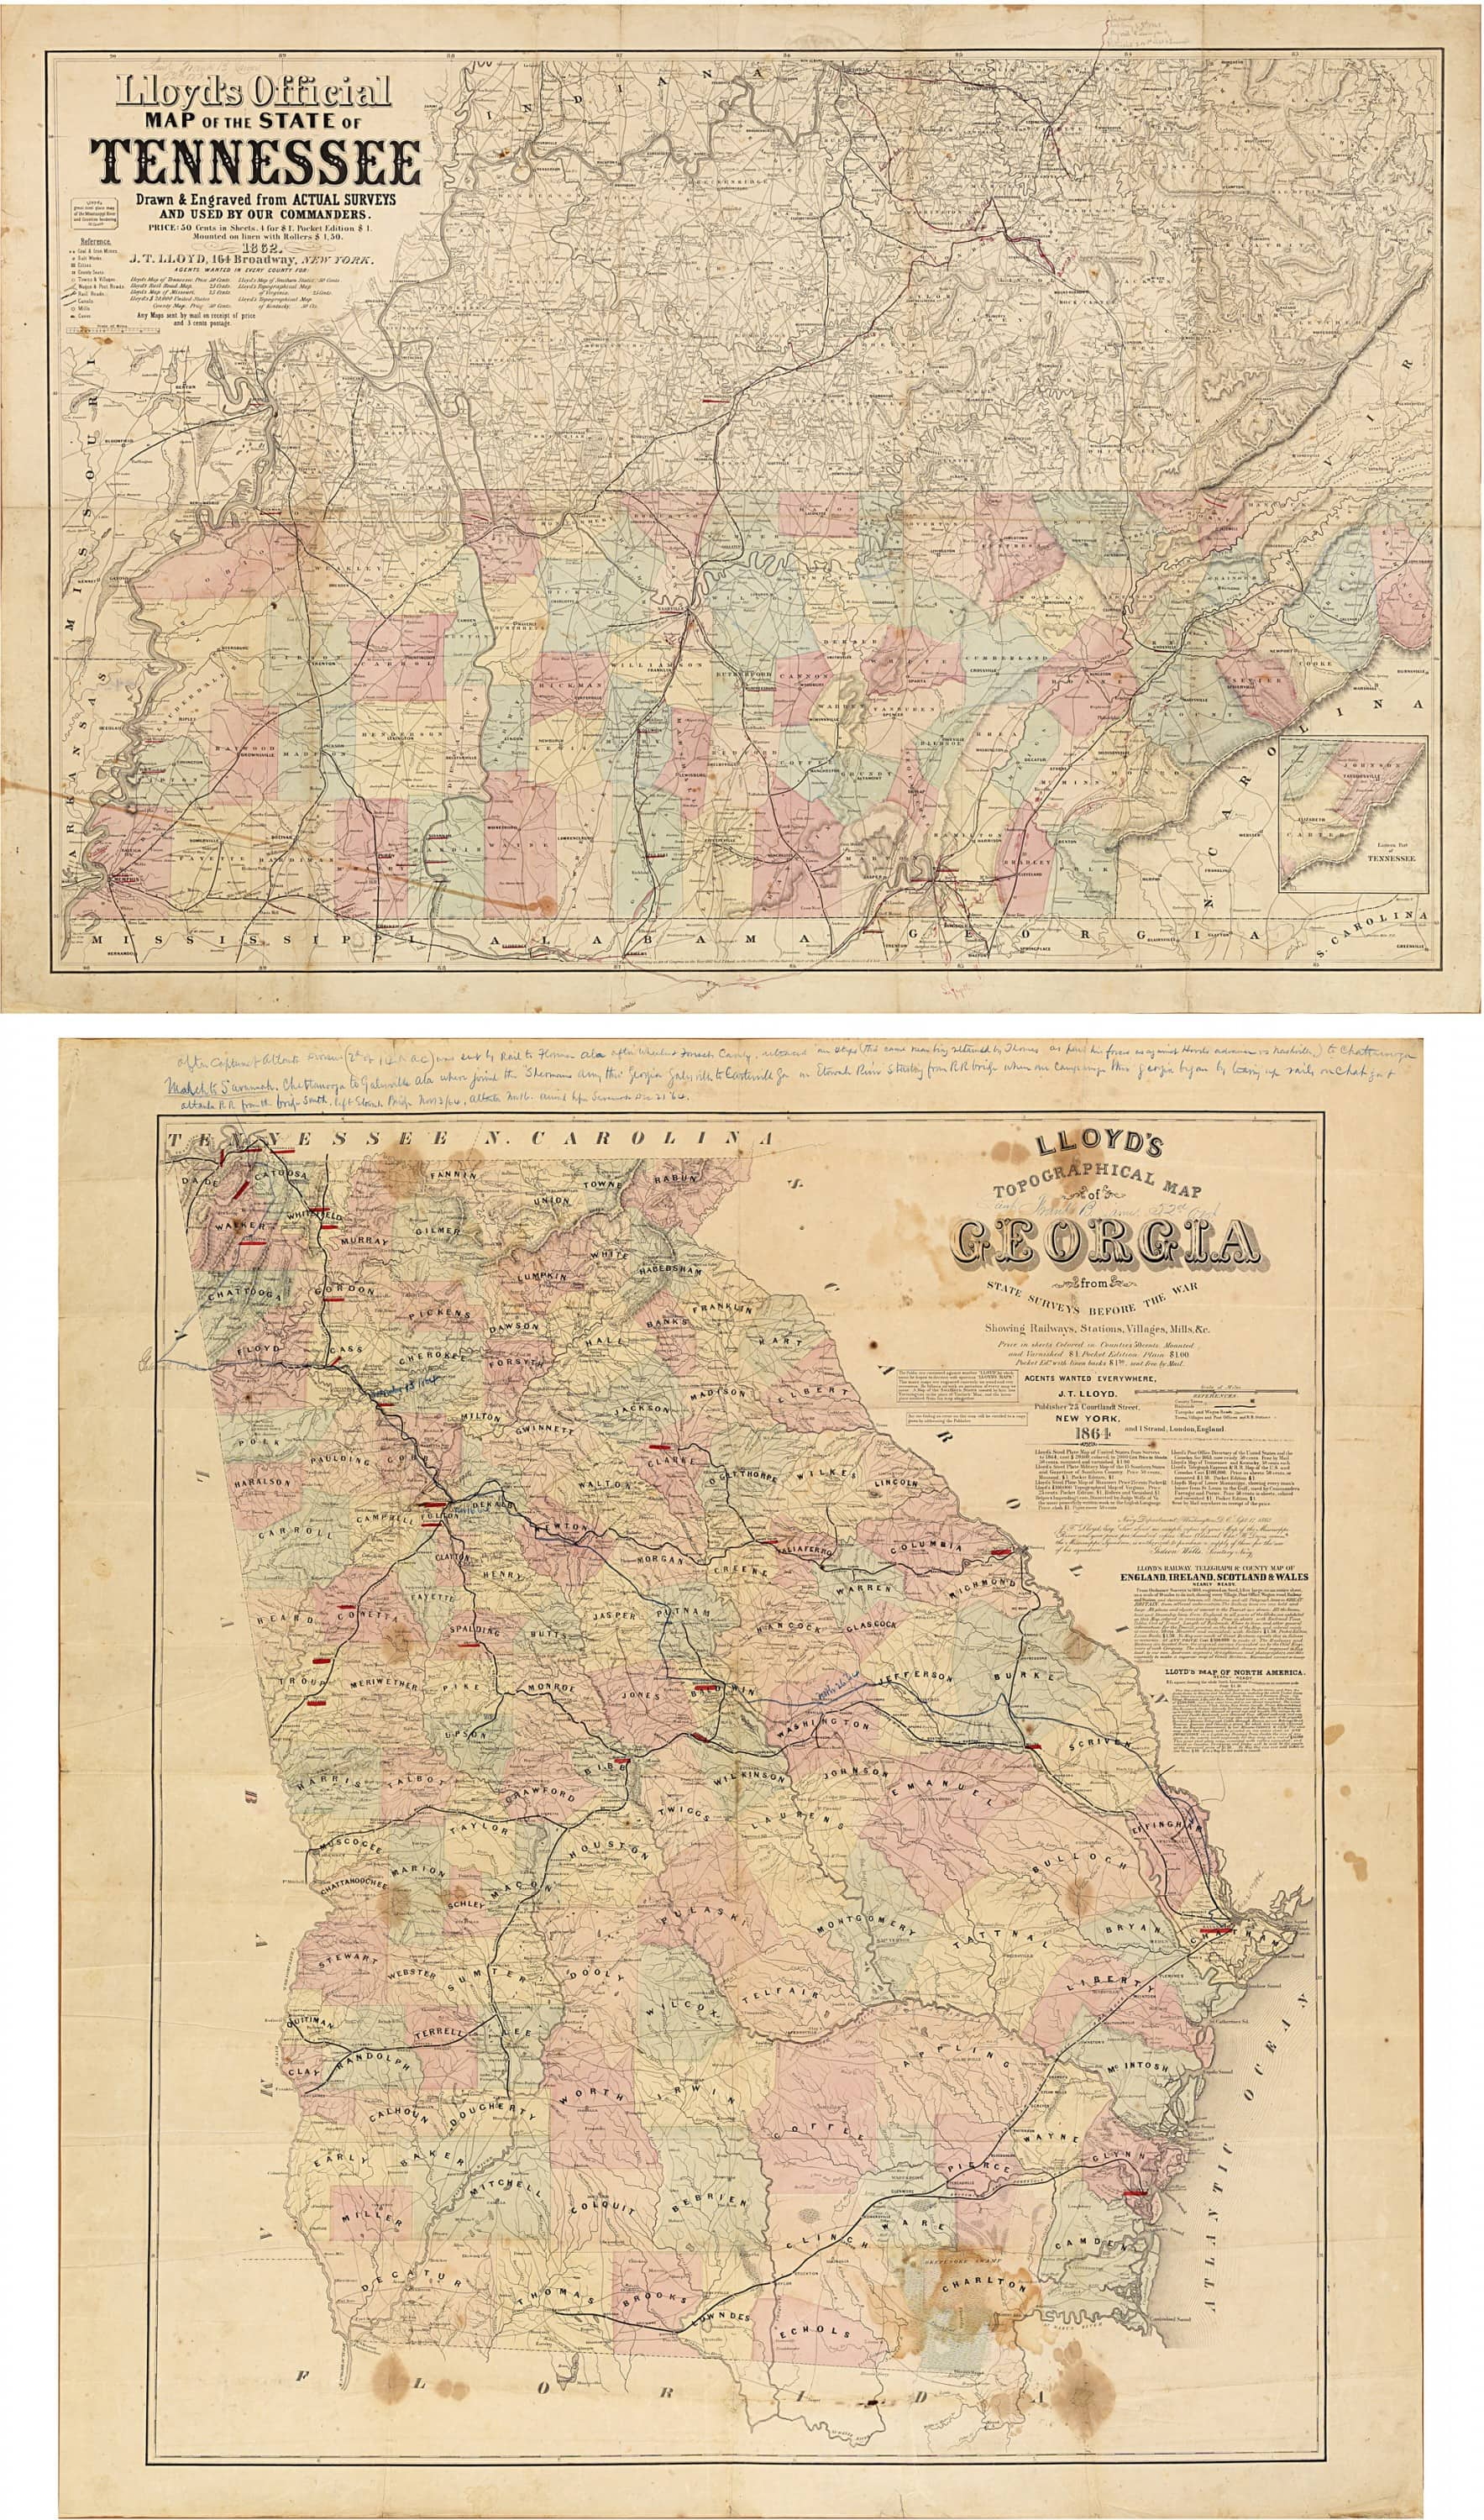 Important Civil War Era Maps Of Tennessee And Georgia